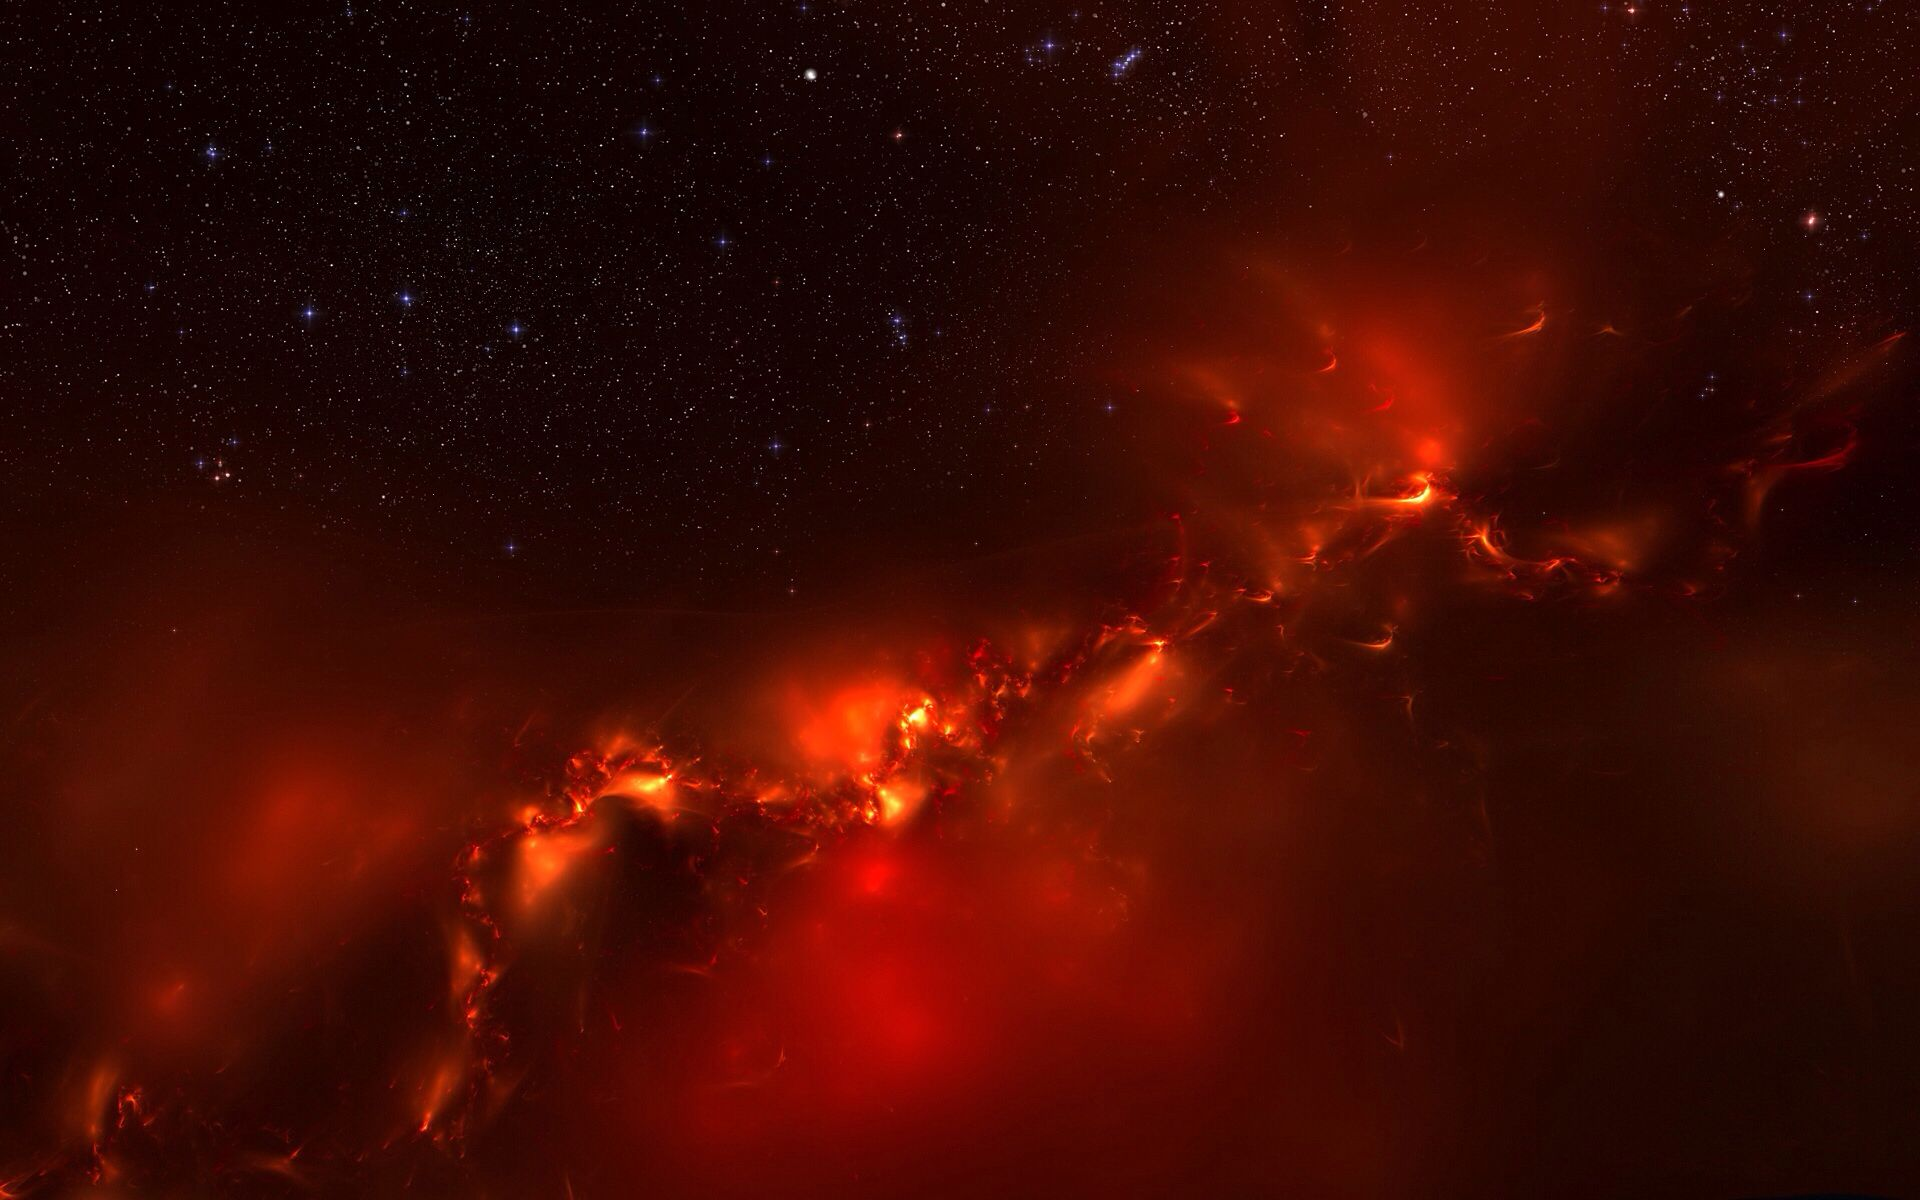 Pin By Jstyle On Photography Galaxy Wallpaper Red Space Iphone Wallpaper Nebula